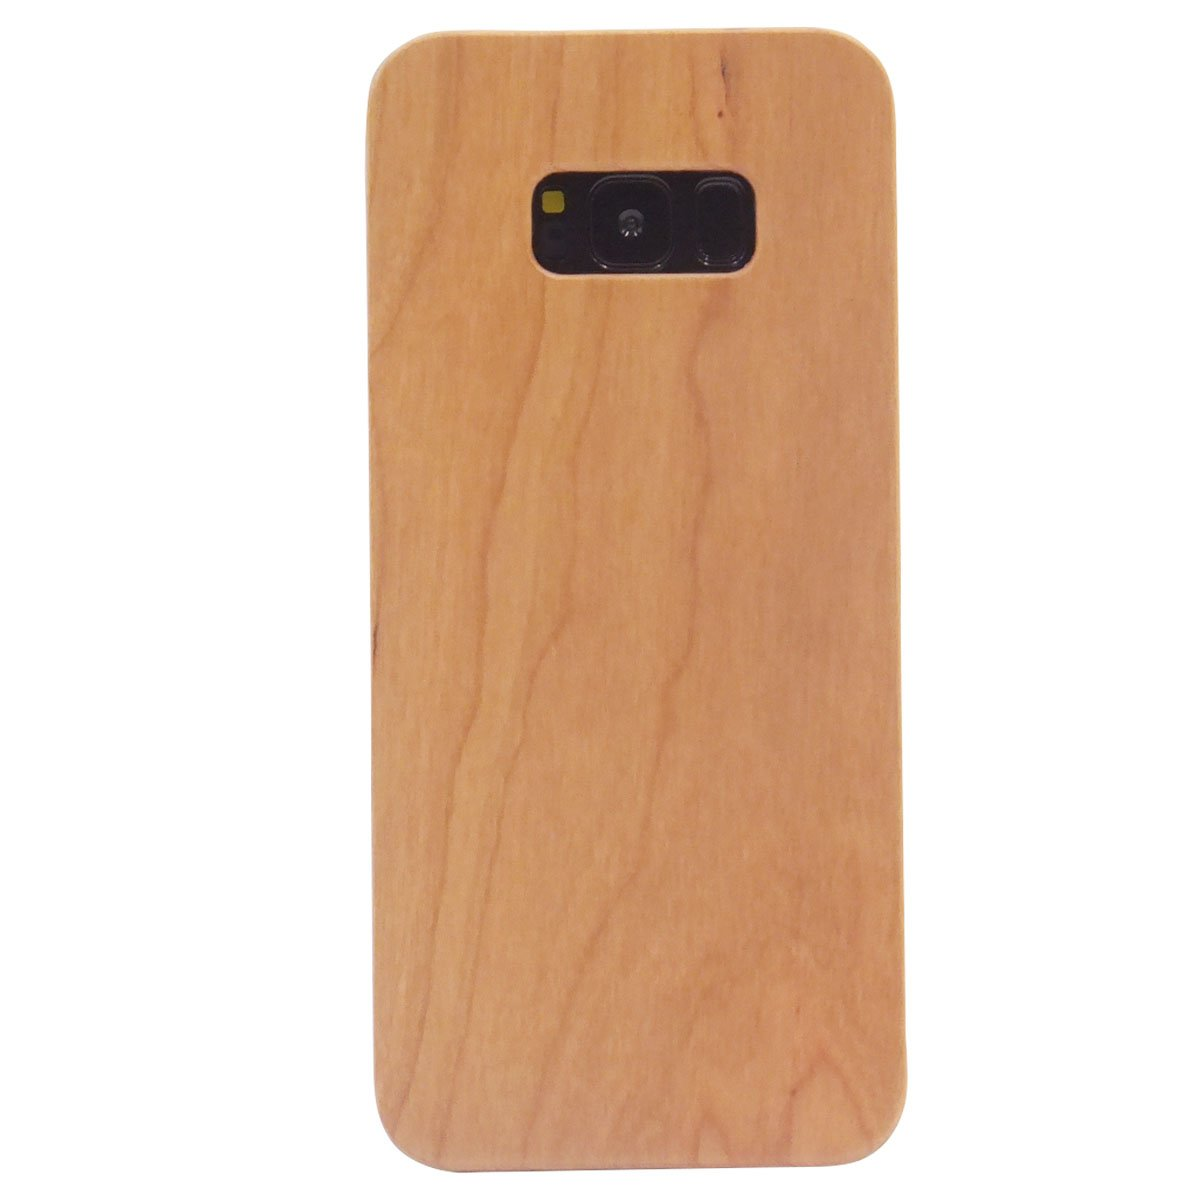 huge discount e72e2 2483d Samsung S8 Plus Case Wood Grain , Blue Hole 6.2 inch Real Wood Phone Case  Bumper with PC Dual Layer Protect Cover Case for Samsung Galaxy S8 Plus -  ...